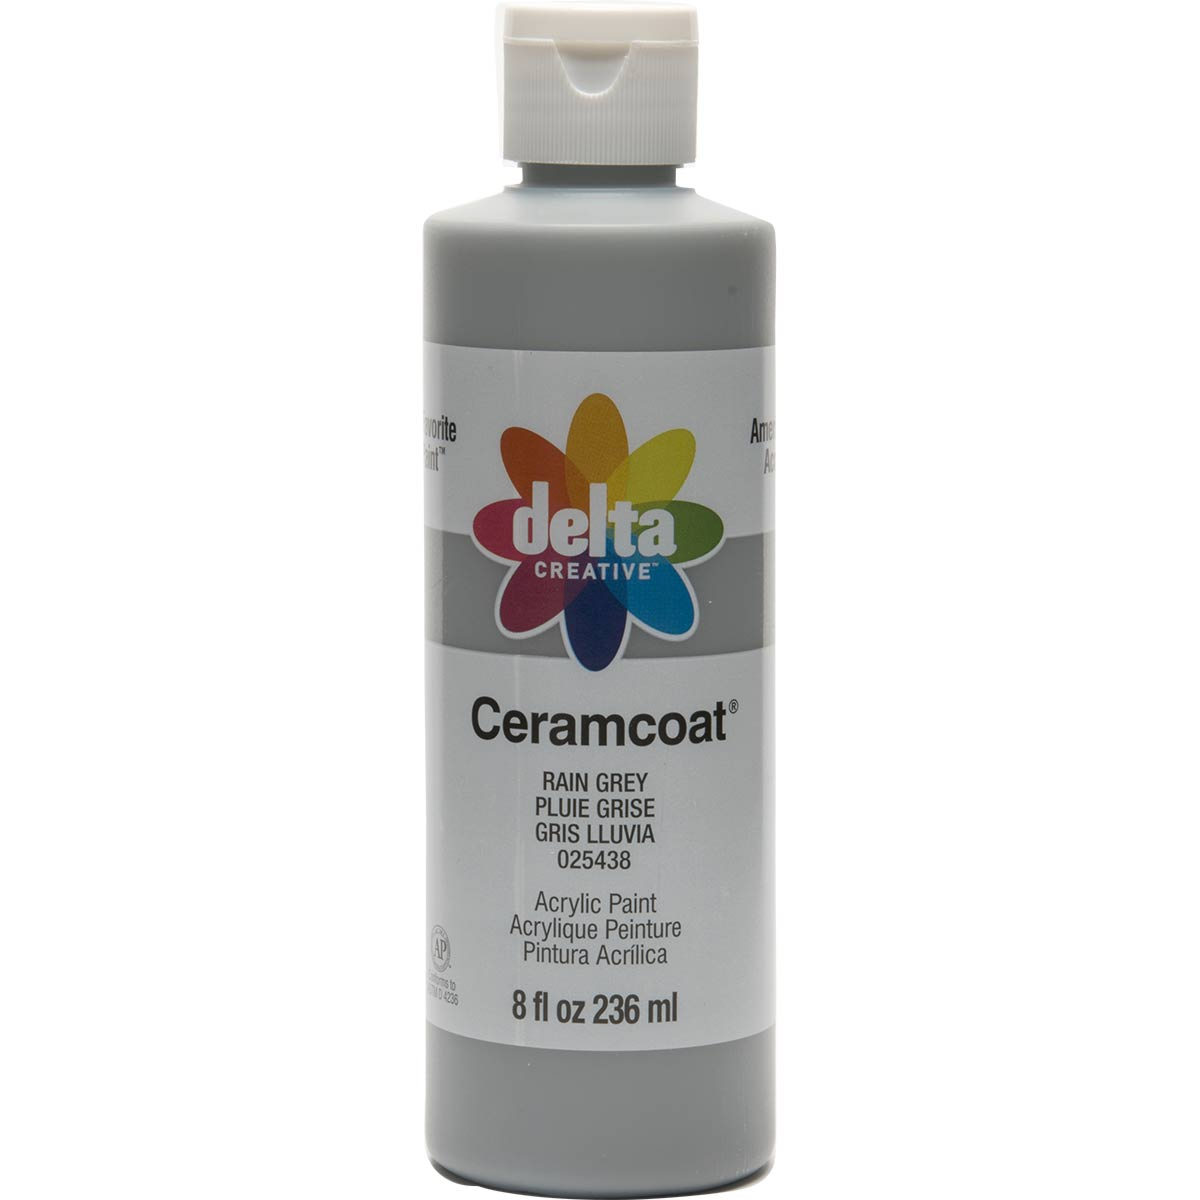 Delta Ceramcoat ® Acrylic Paint - Rain Grey, 8 oz.